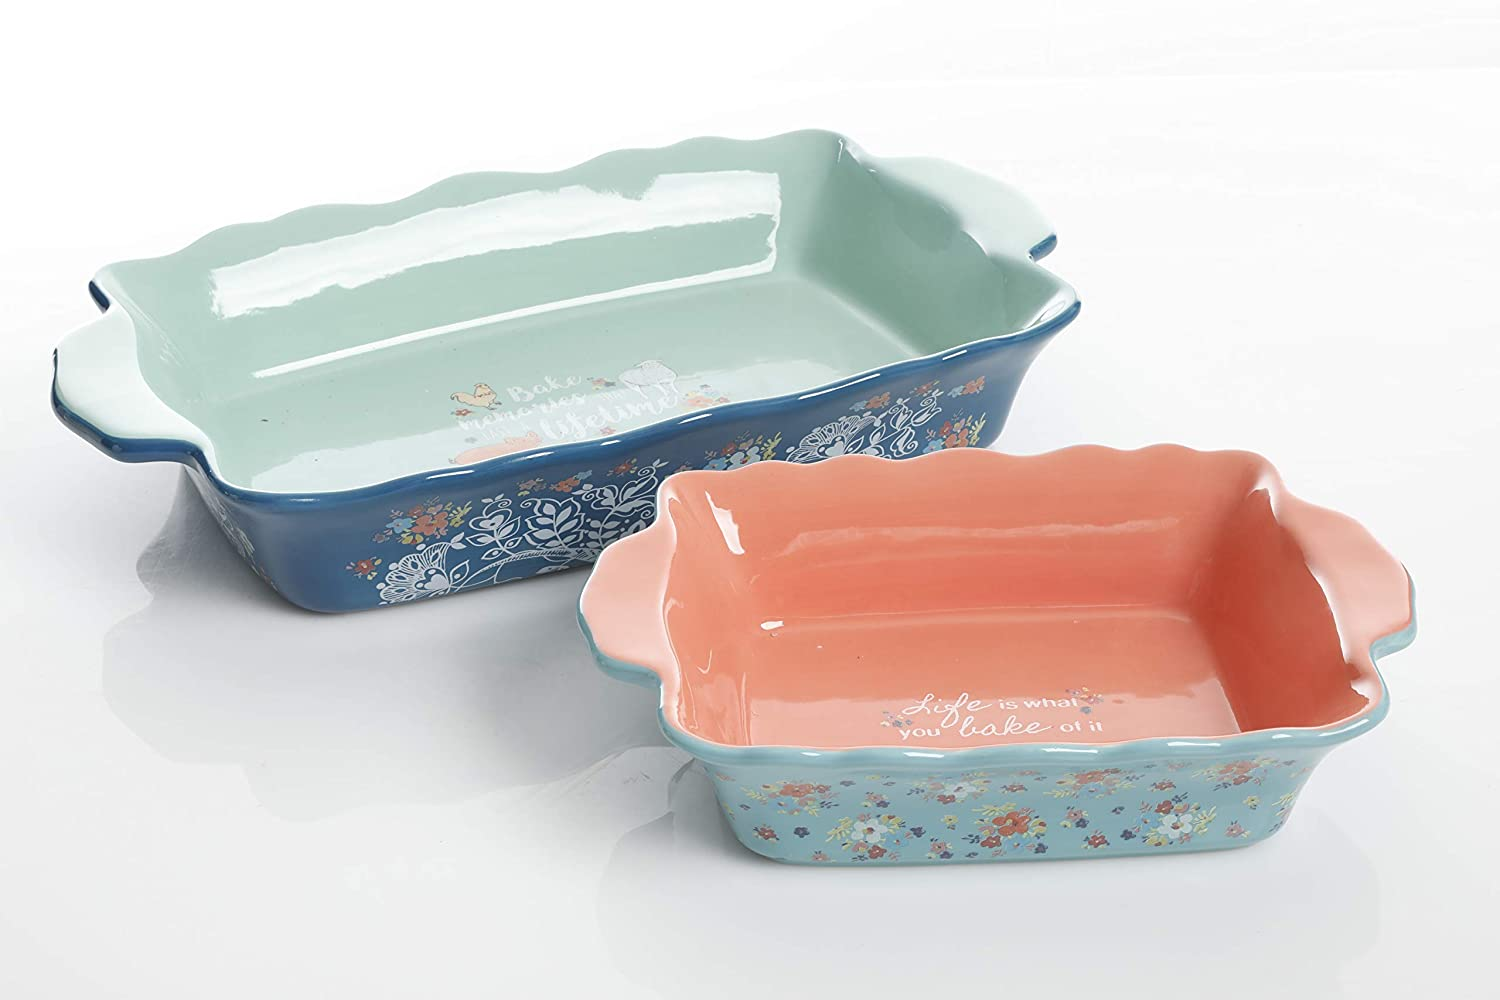 Urban Market by Gibson 99888.02RM Life on the Farm 2pc Set, 13', 10.75' bakeware, Assorted 13 10.75 bakeware Gibson Overseas